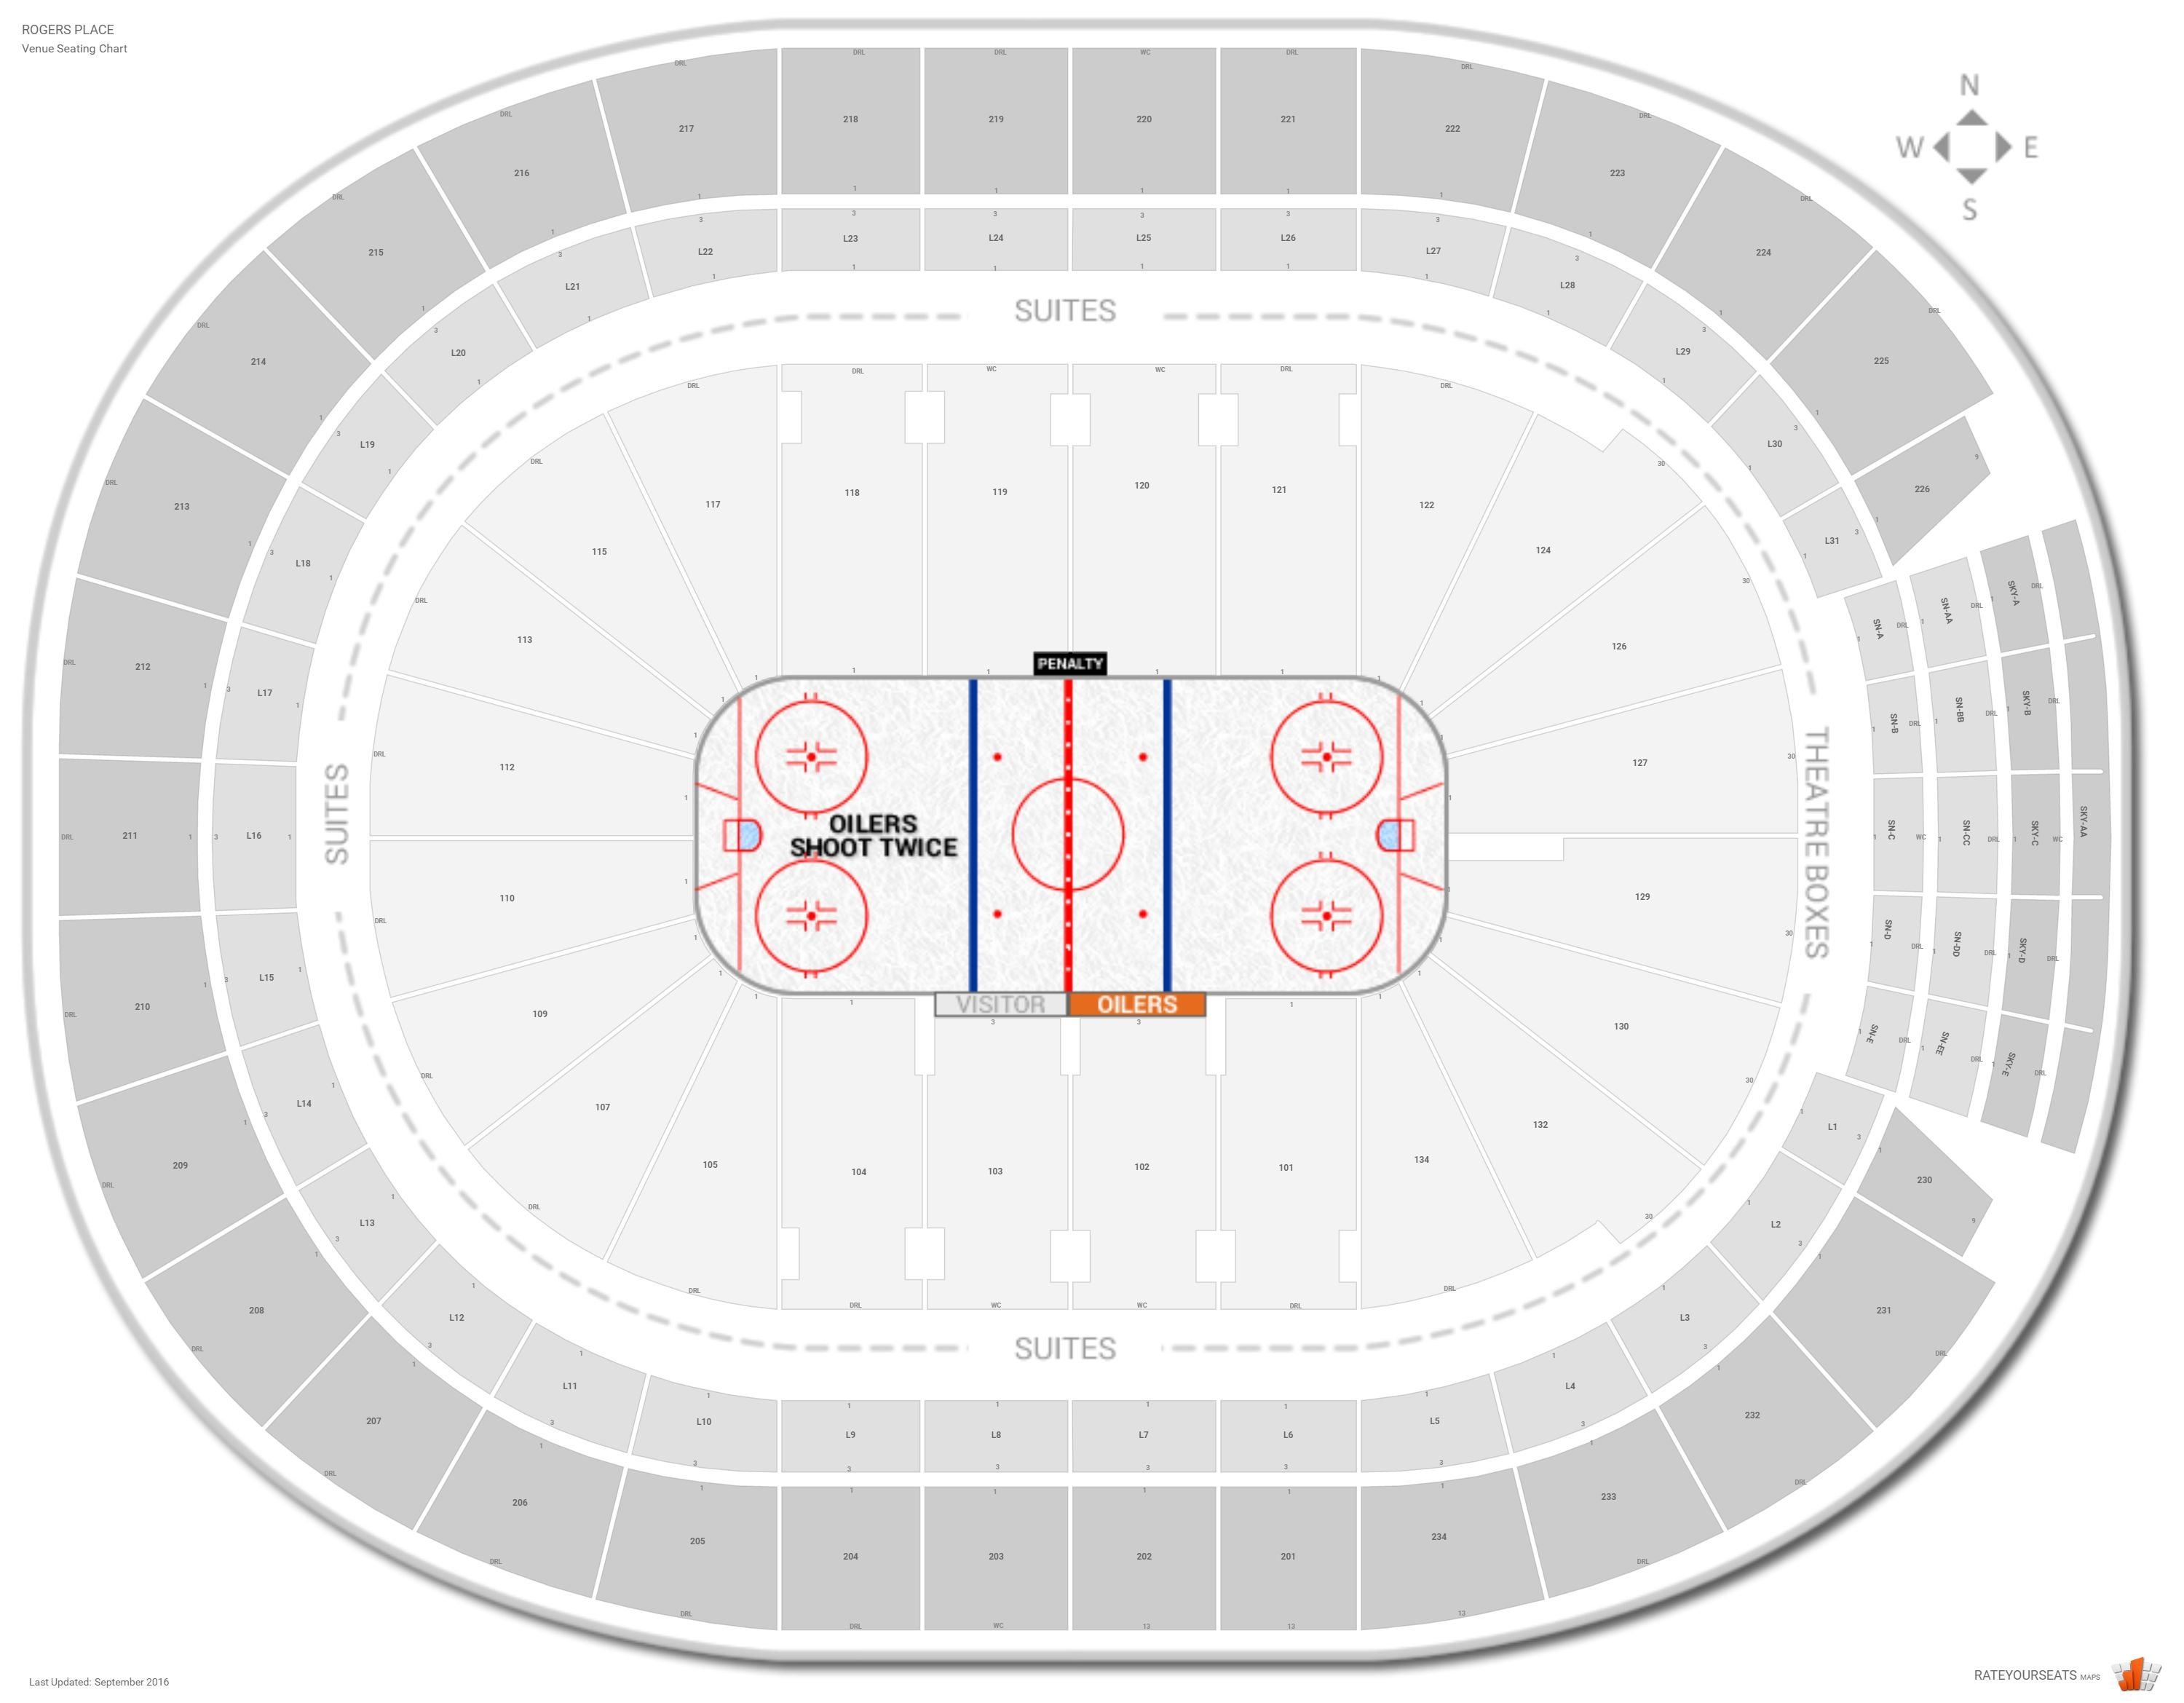 Rogers Place Seating Chart with Row Numbers